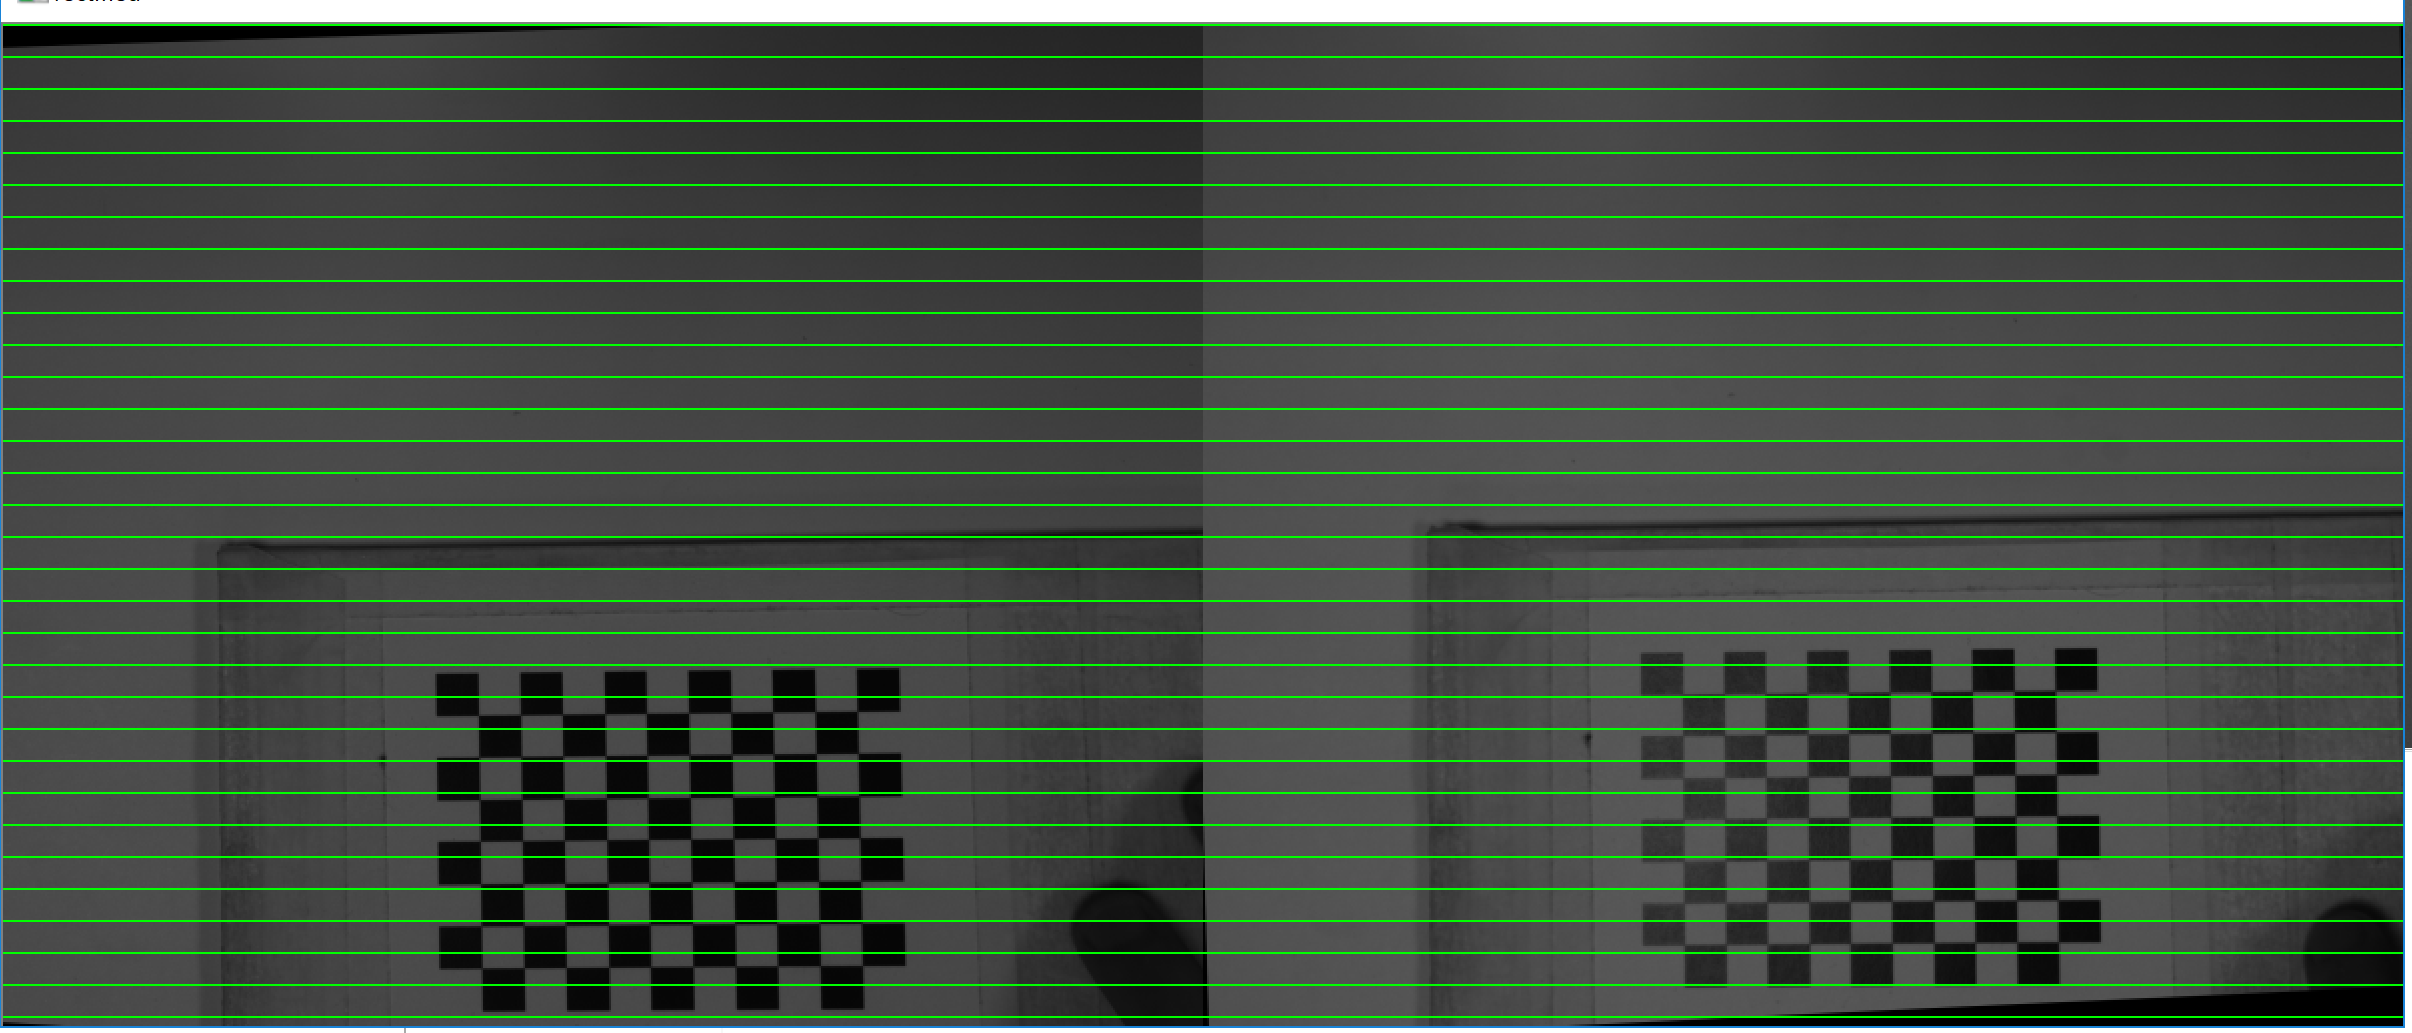 StereoRectify - does it work - OpenCV Q&A Forum